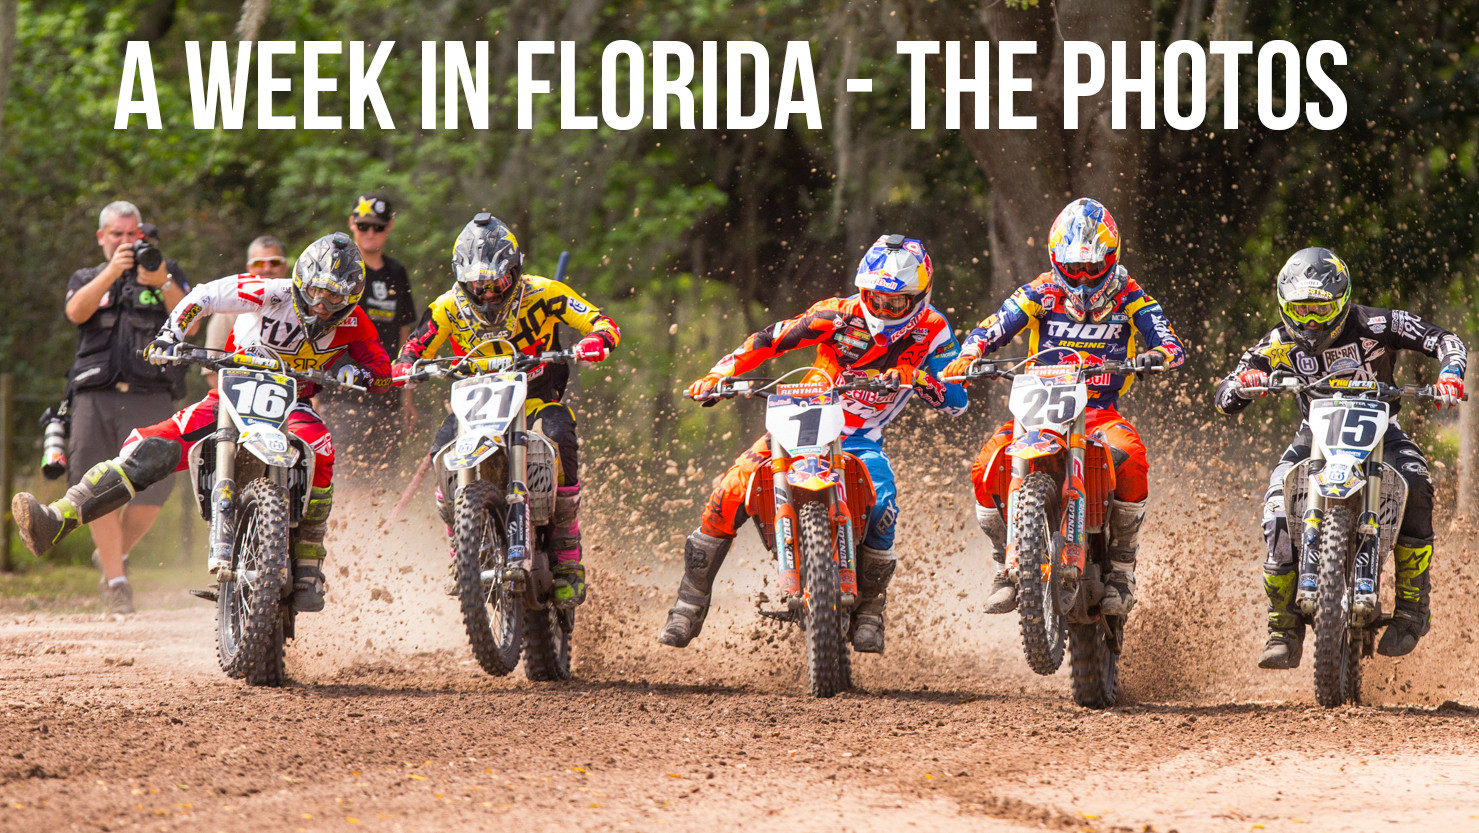 A Week in Florida - The Photos - A Week in Florida Prepping for the Daytona Supercross - Motocross Pictures - Vital MX